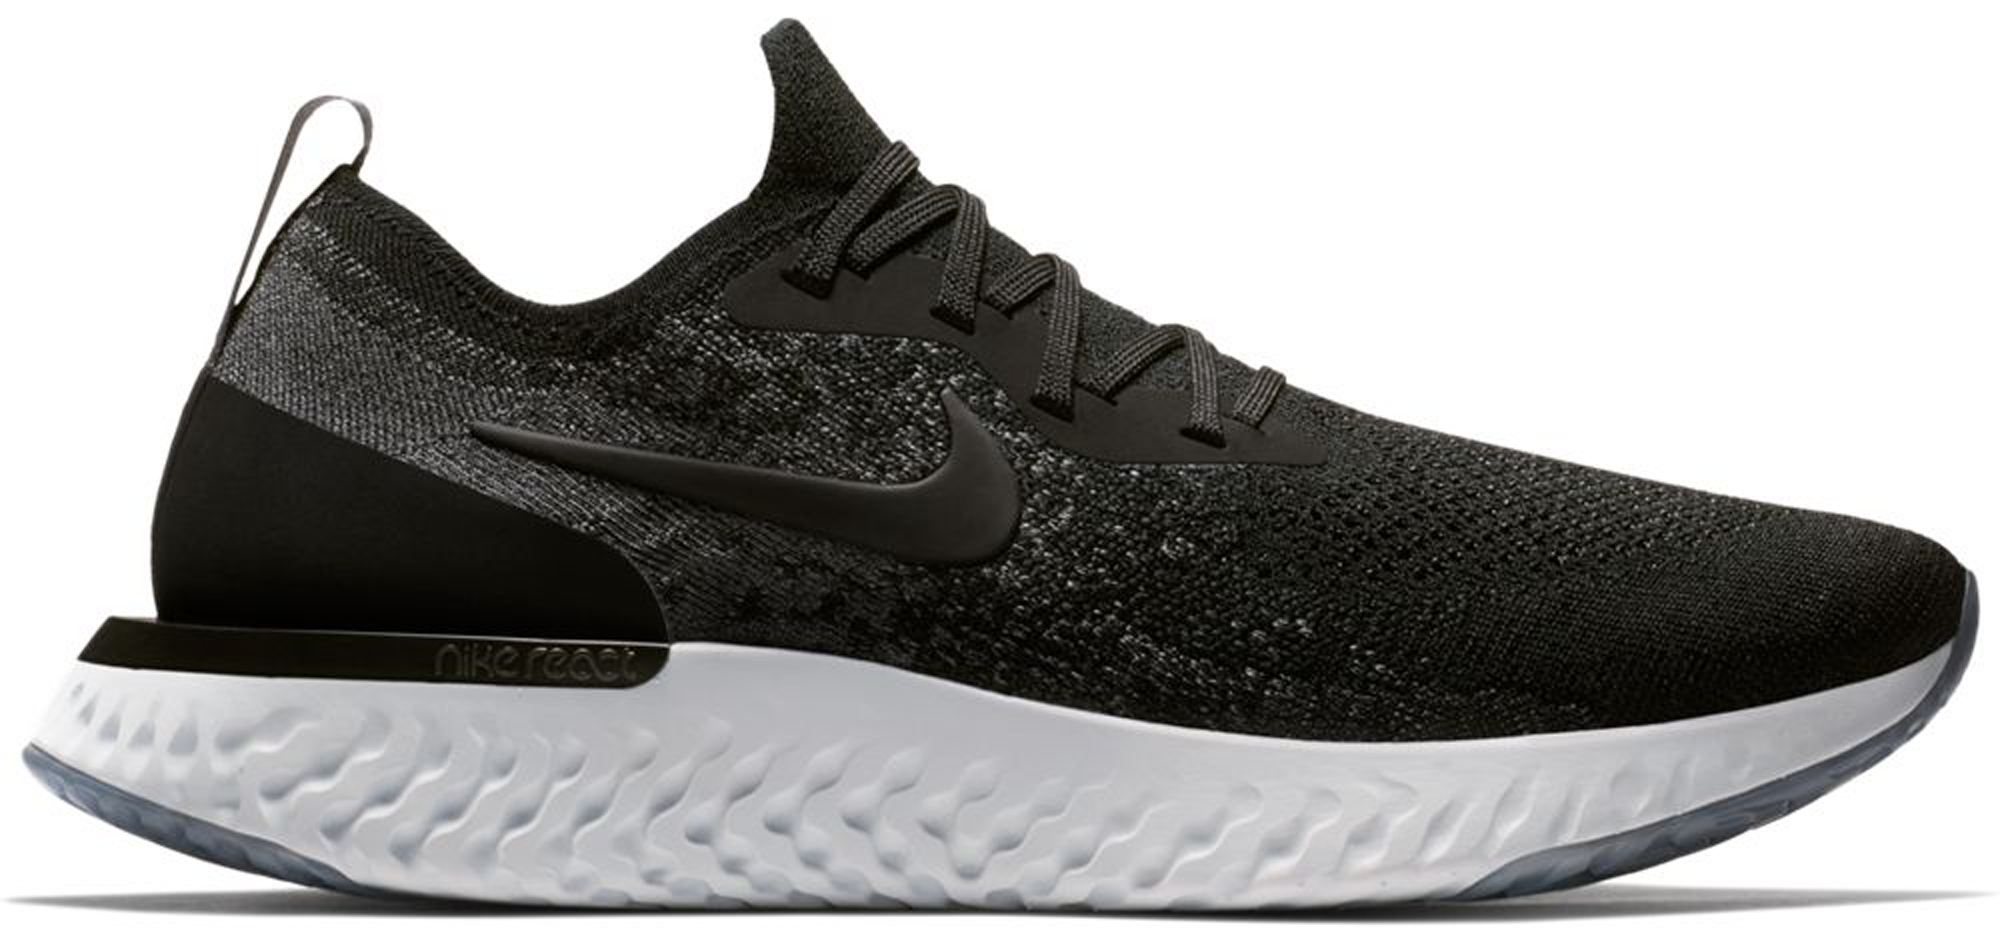 https://stockx.imgix.net/Nike-Epic-React-Flyknit-Black-Dark-Grey.png?fit=fill&bg=FFFFFF&w=1400&h=1000&auto=format,compress&trim=color&q=90